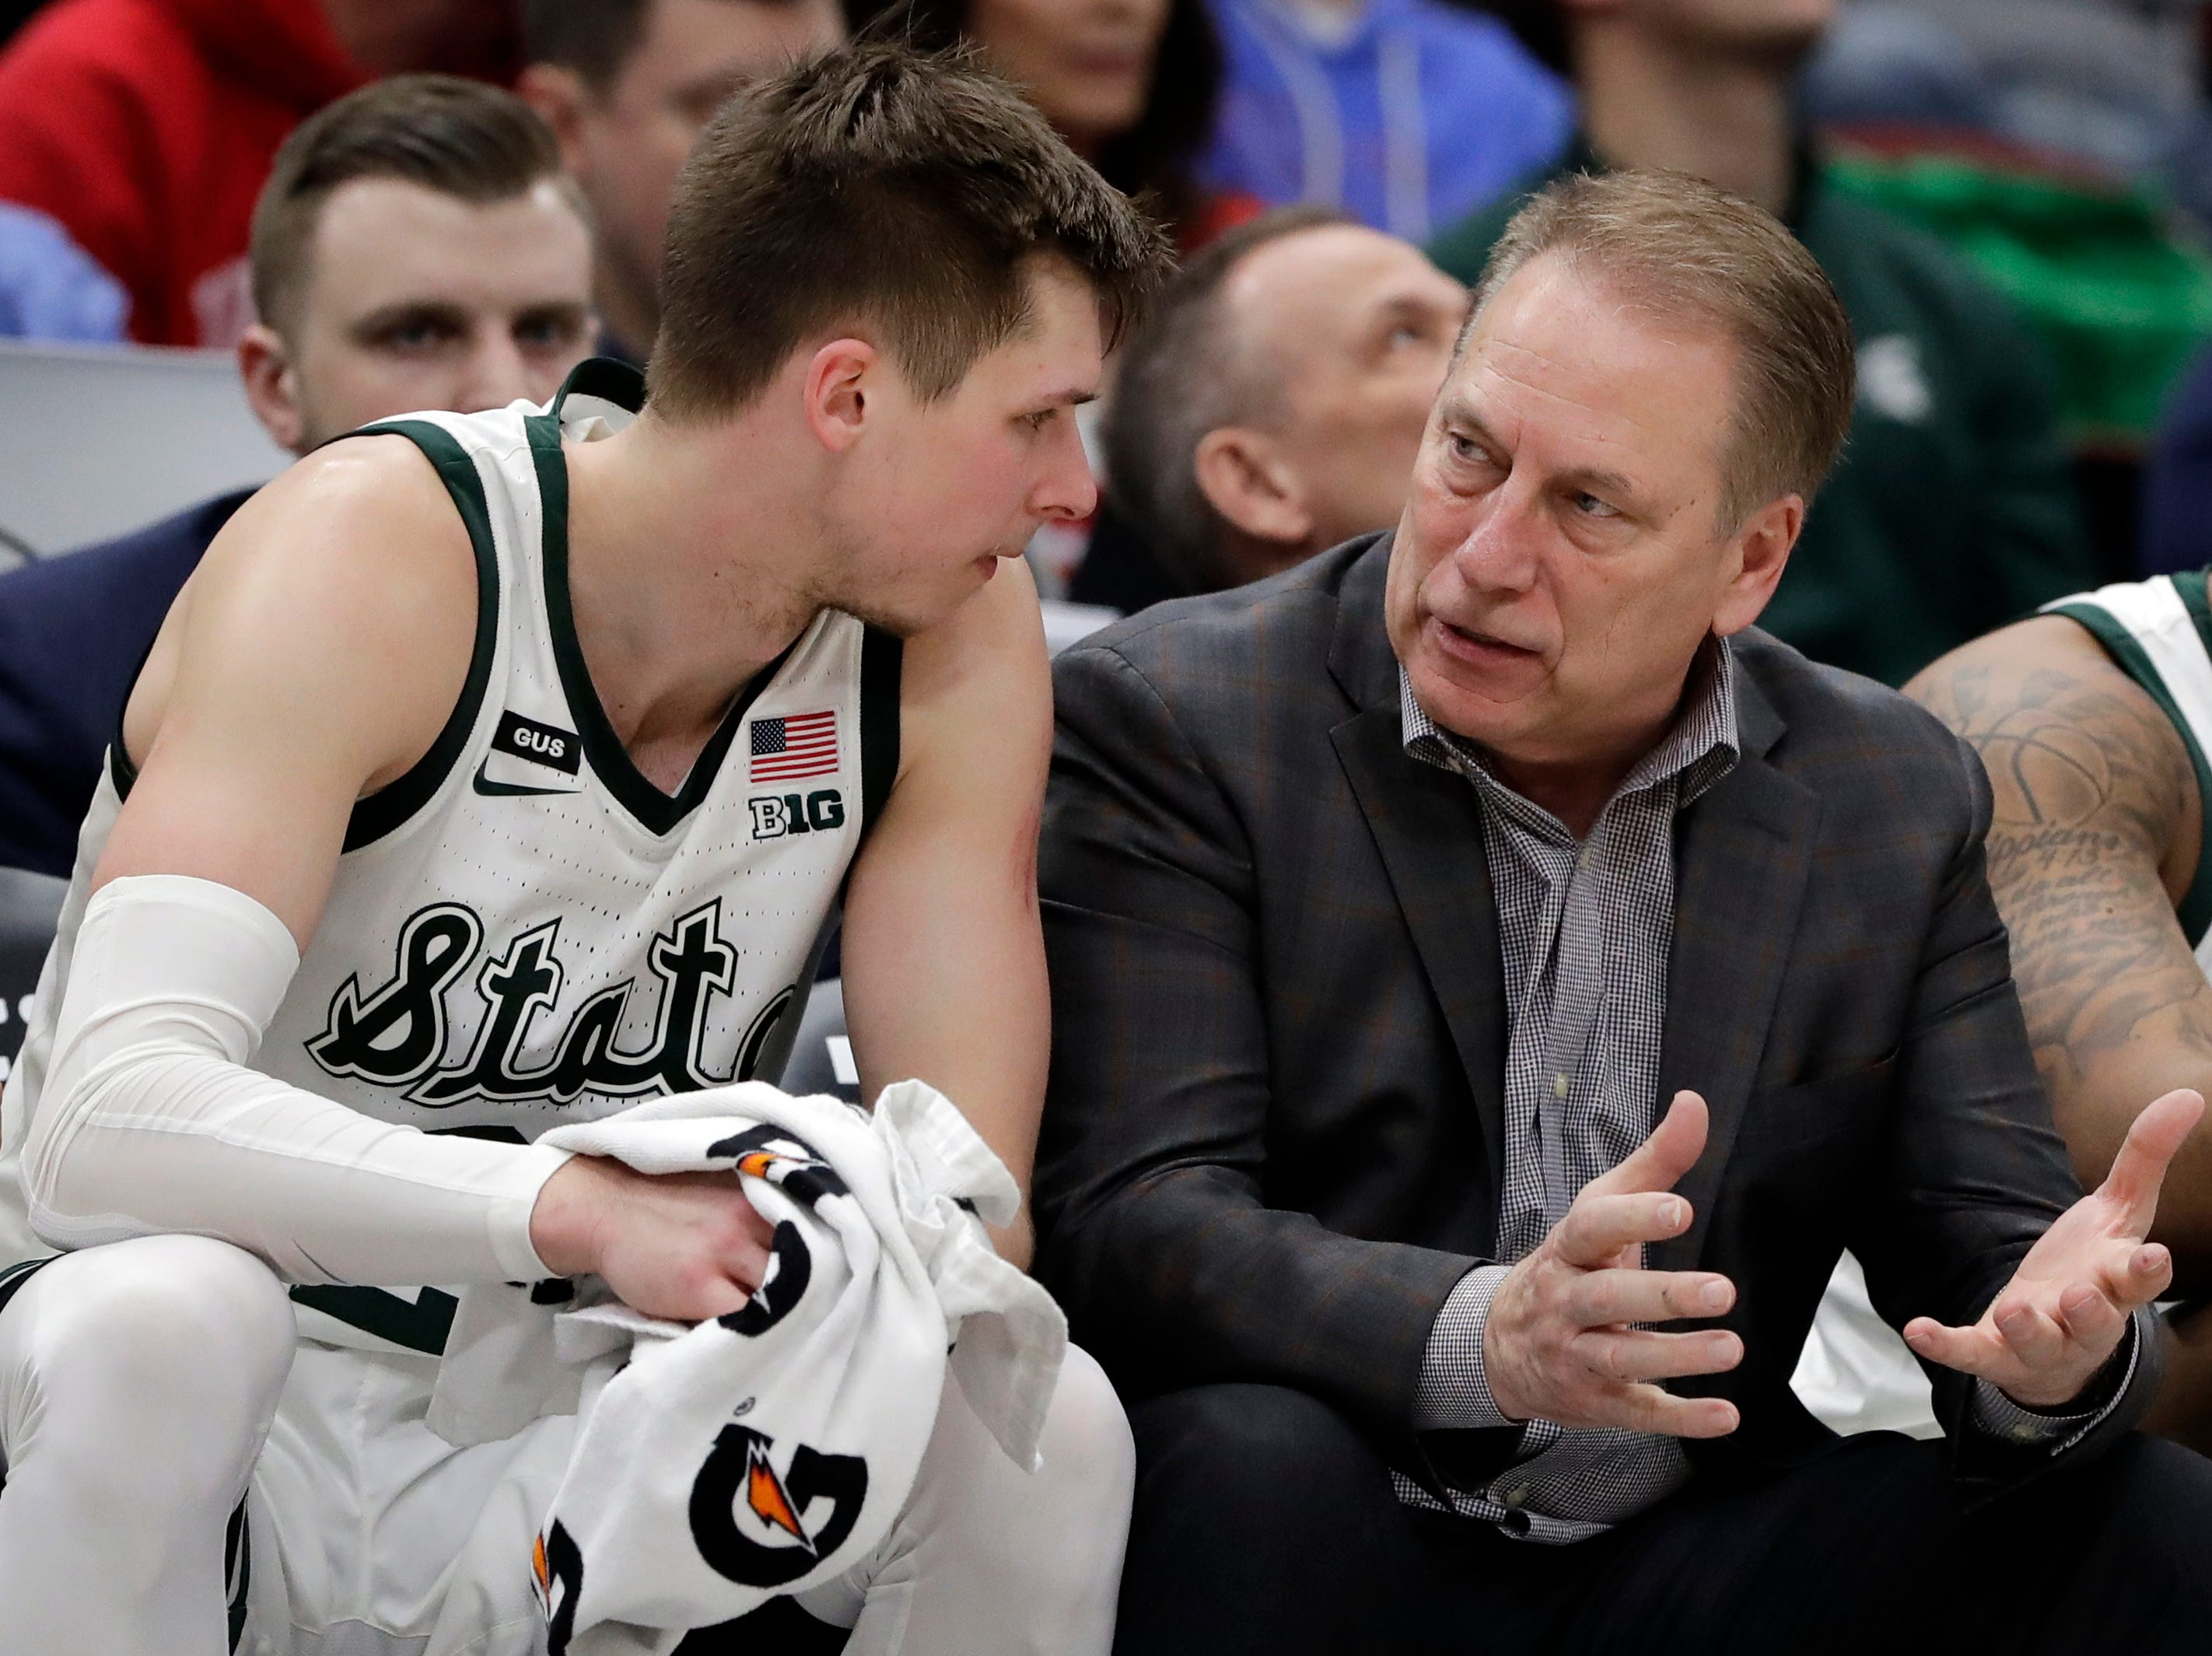 Michigan State head coach Tom Izzo talks to Matt McQuaid on the bench during the second half of an NCAA college basketball game against Wisconsin in the semifinals of the Big Ten Conference tournament, Saturday, March 16, 2019, in Chicago. Michigan State won 67-55.